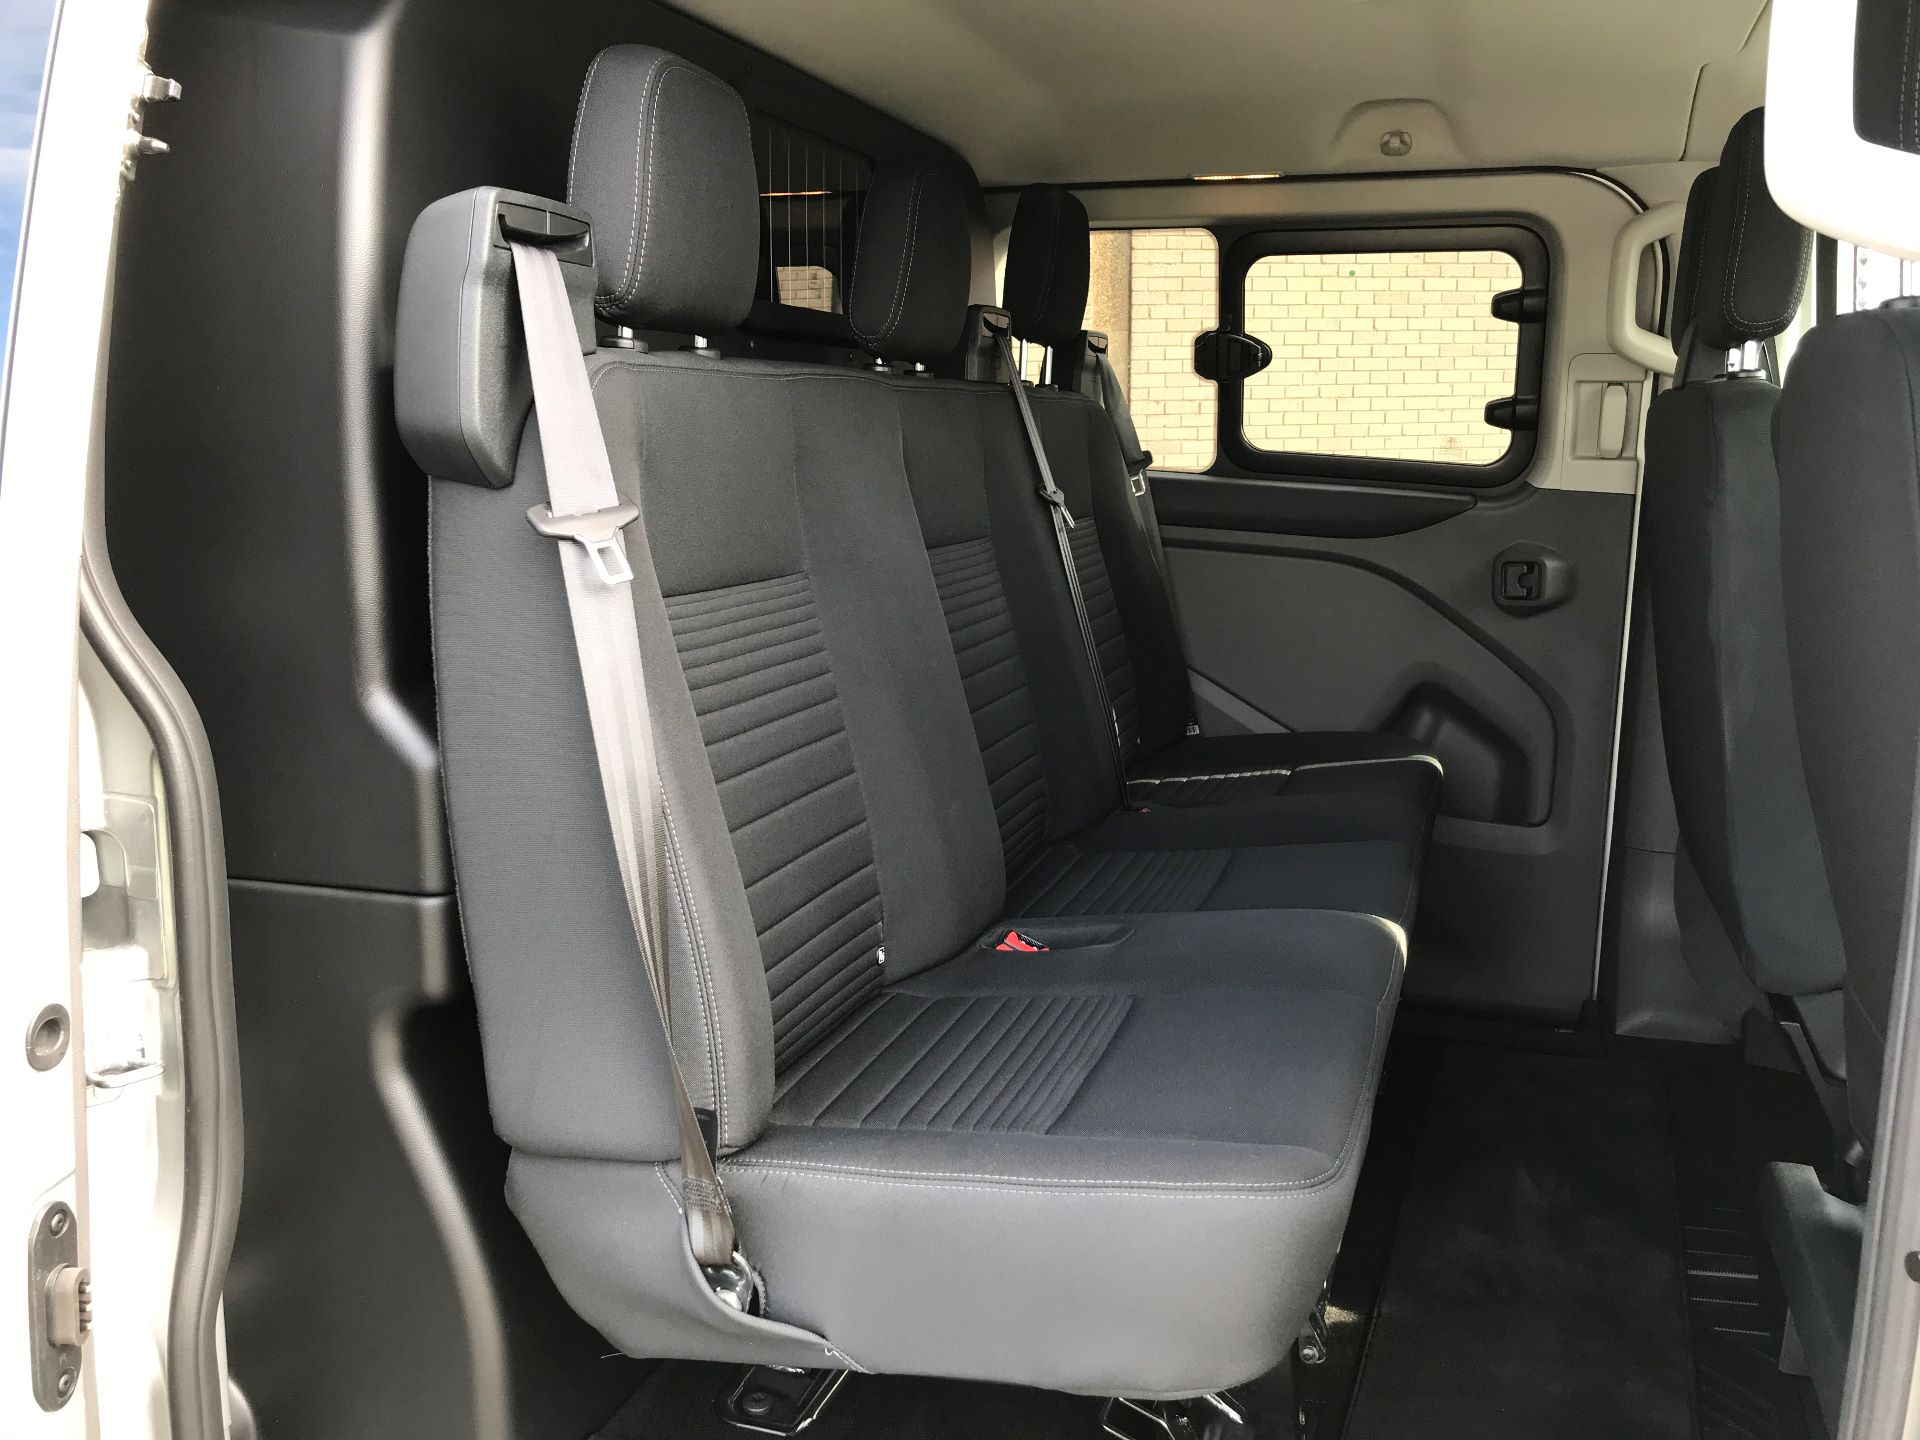 2018 Ford Transit Custom 320 L1 2.0TDCI 130PS LOW ROOF DOUBLE CAB LIMITED EURO 6 (HG68MPZ) Image 18